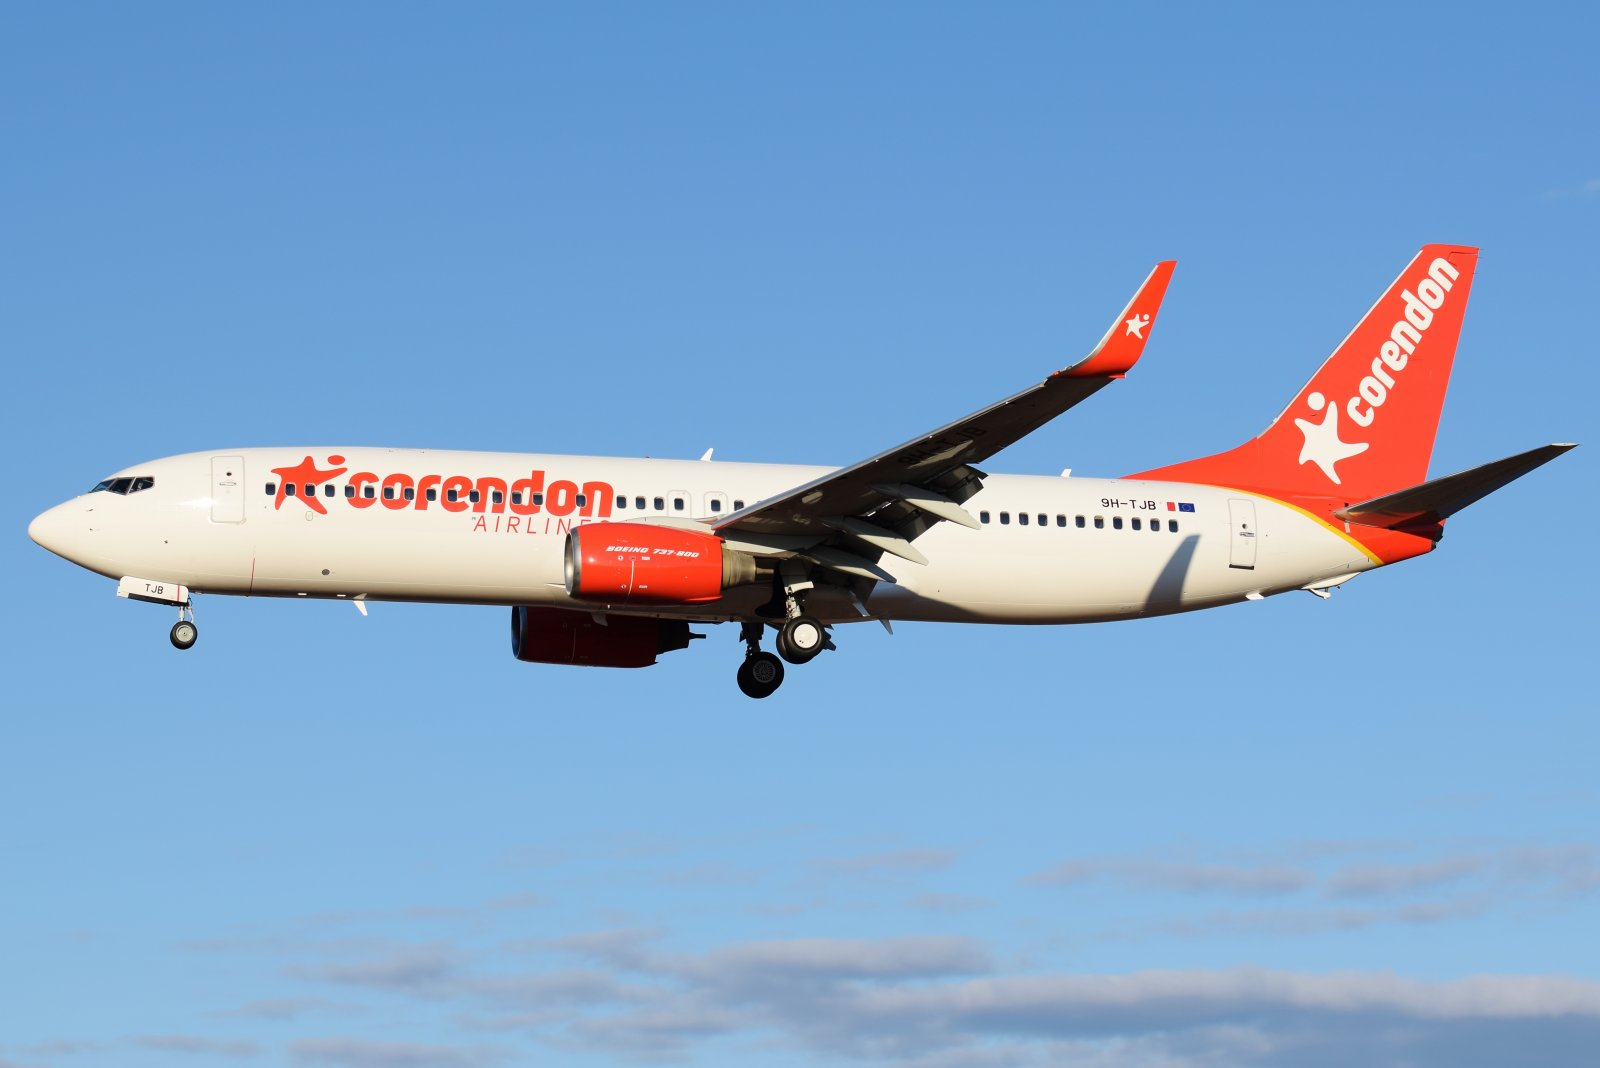 9H-TJB - Boeing 737-8FH - Corendon Airlines Europe - 13.4.2019